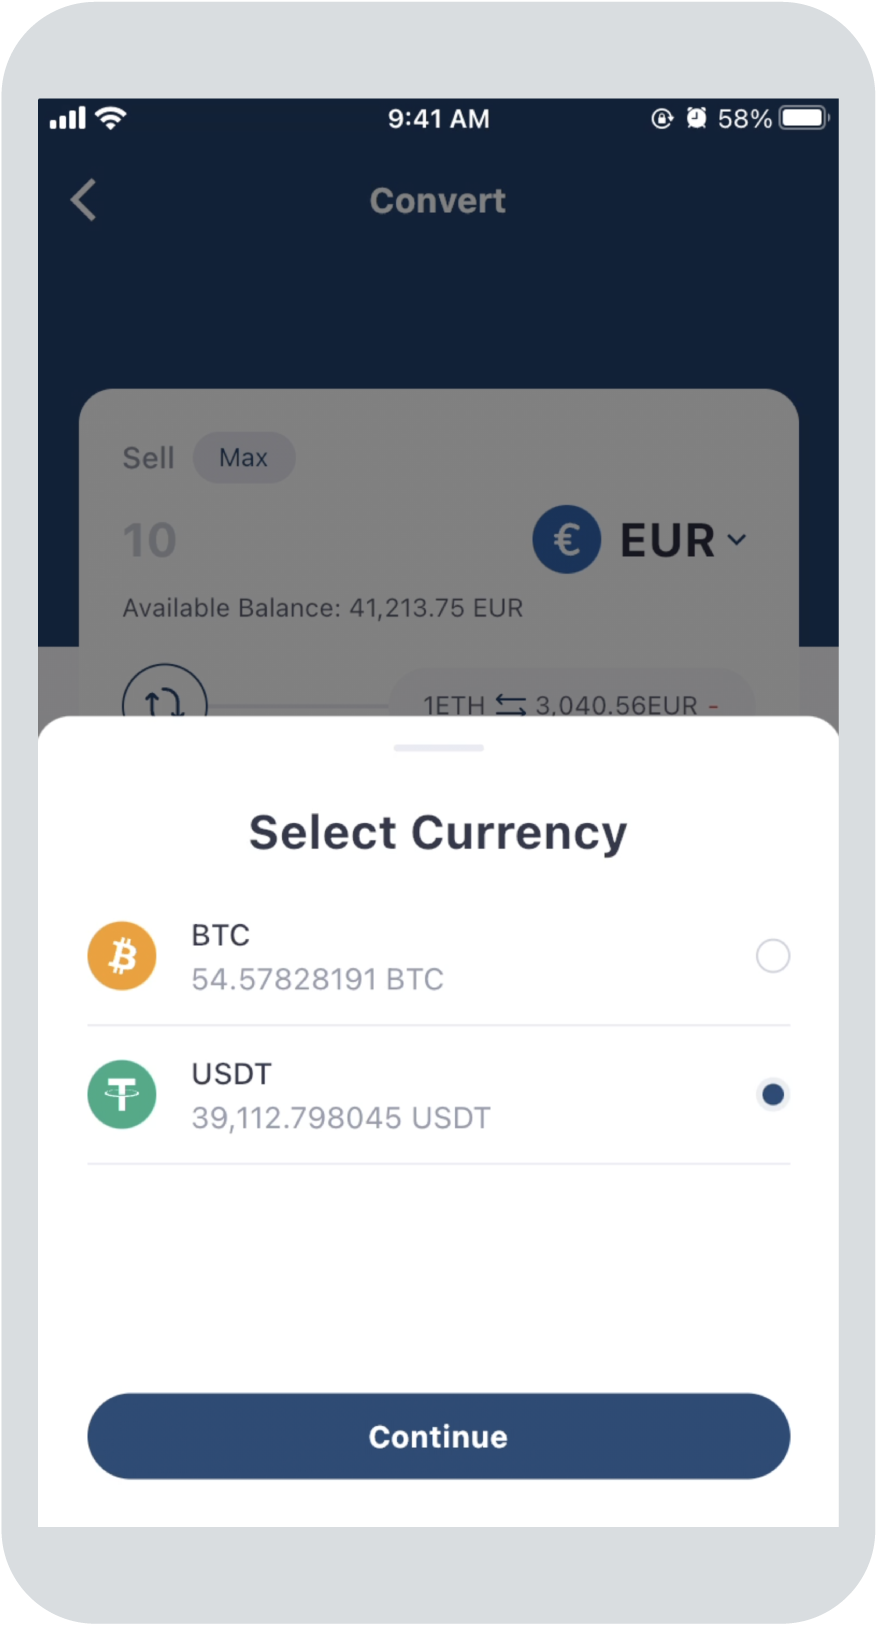 Step 1:Select Currency